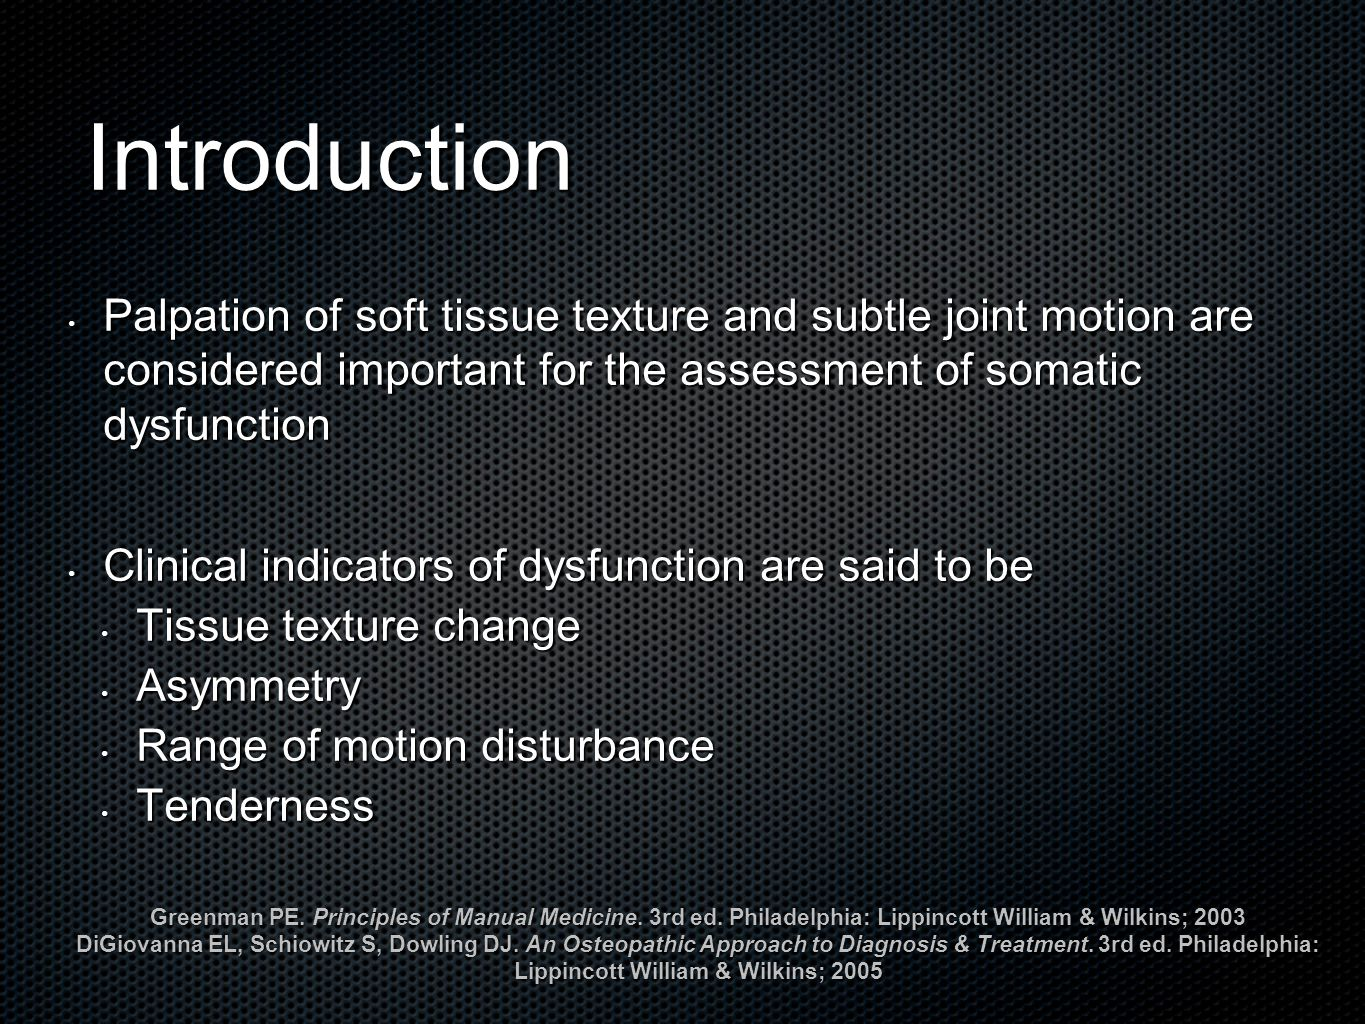 Introduction Palpation of soft tissue texture and subtle joint motion are considered important for the assessment of somatic dysfunction Palpation of soft tissue texture and subtle joint motion are considered important for the assessment of somatic dysfunction Clinical indicators of dysfunction are said to be Clinical indicators of dysfunction are said to be Tissue texture change Tissue texture change Asymmetry Asymmetry Range of motion disturbance Range of motion disturbance Tenderness Tenderness Greenman PE.